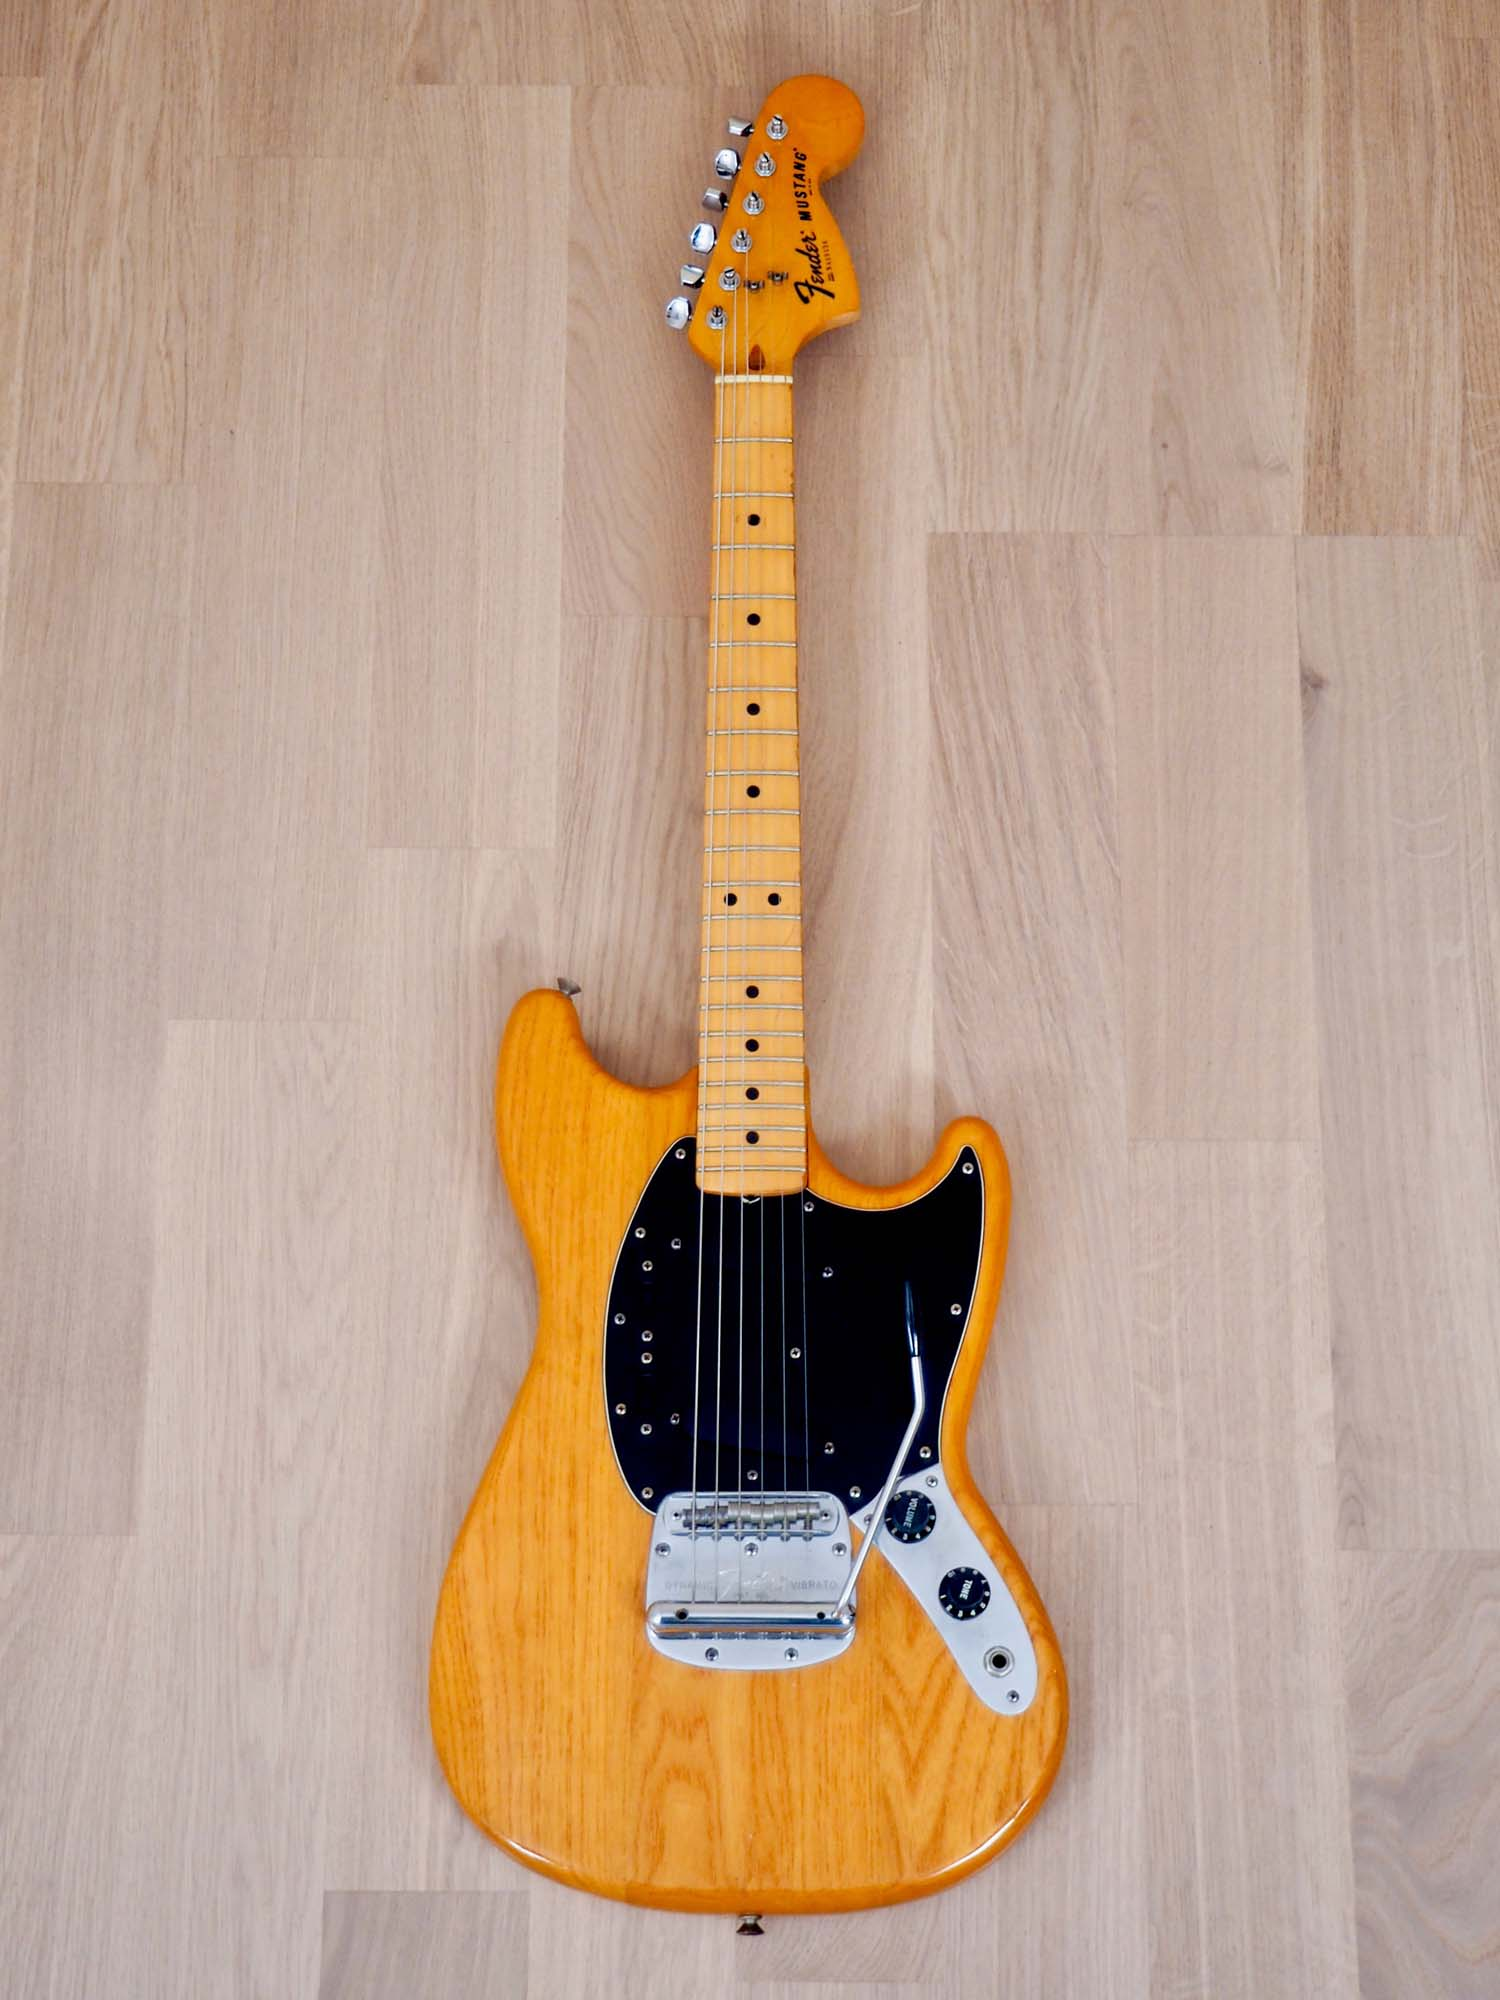 1978 Fender Mustang Vintage Offset Electric Guitar Natural, Ash Body & Maple Board, 100% Original